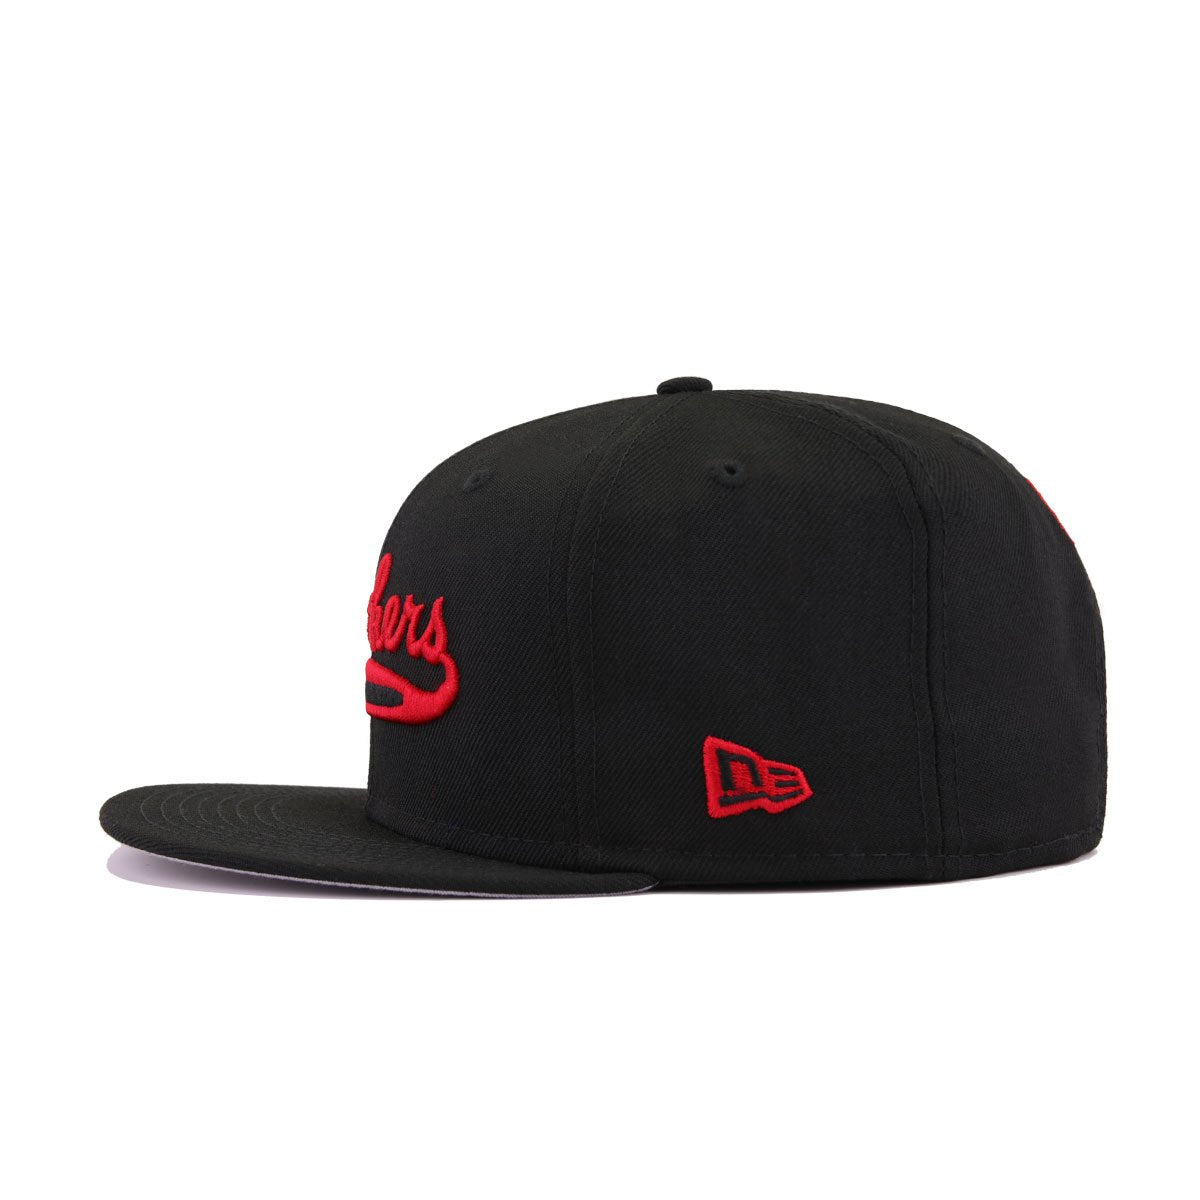 Tampa Smokers Black New Era 9Fifty Snapback